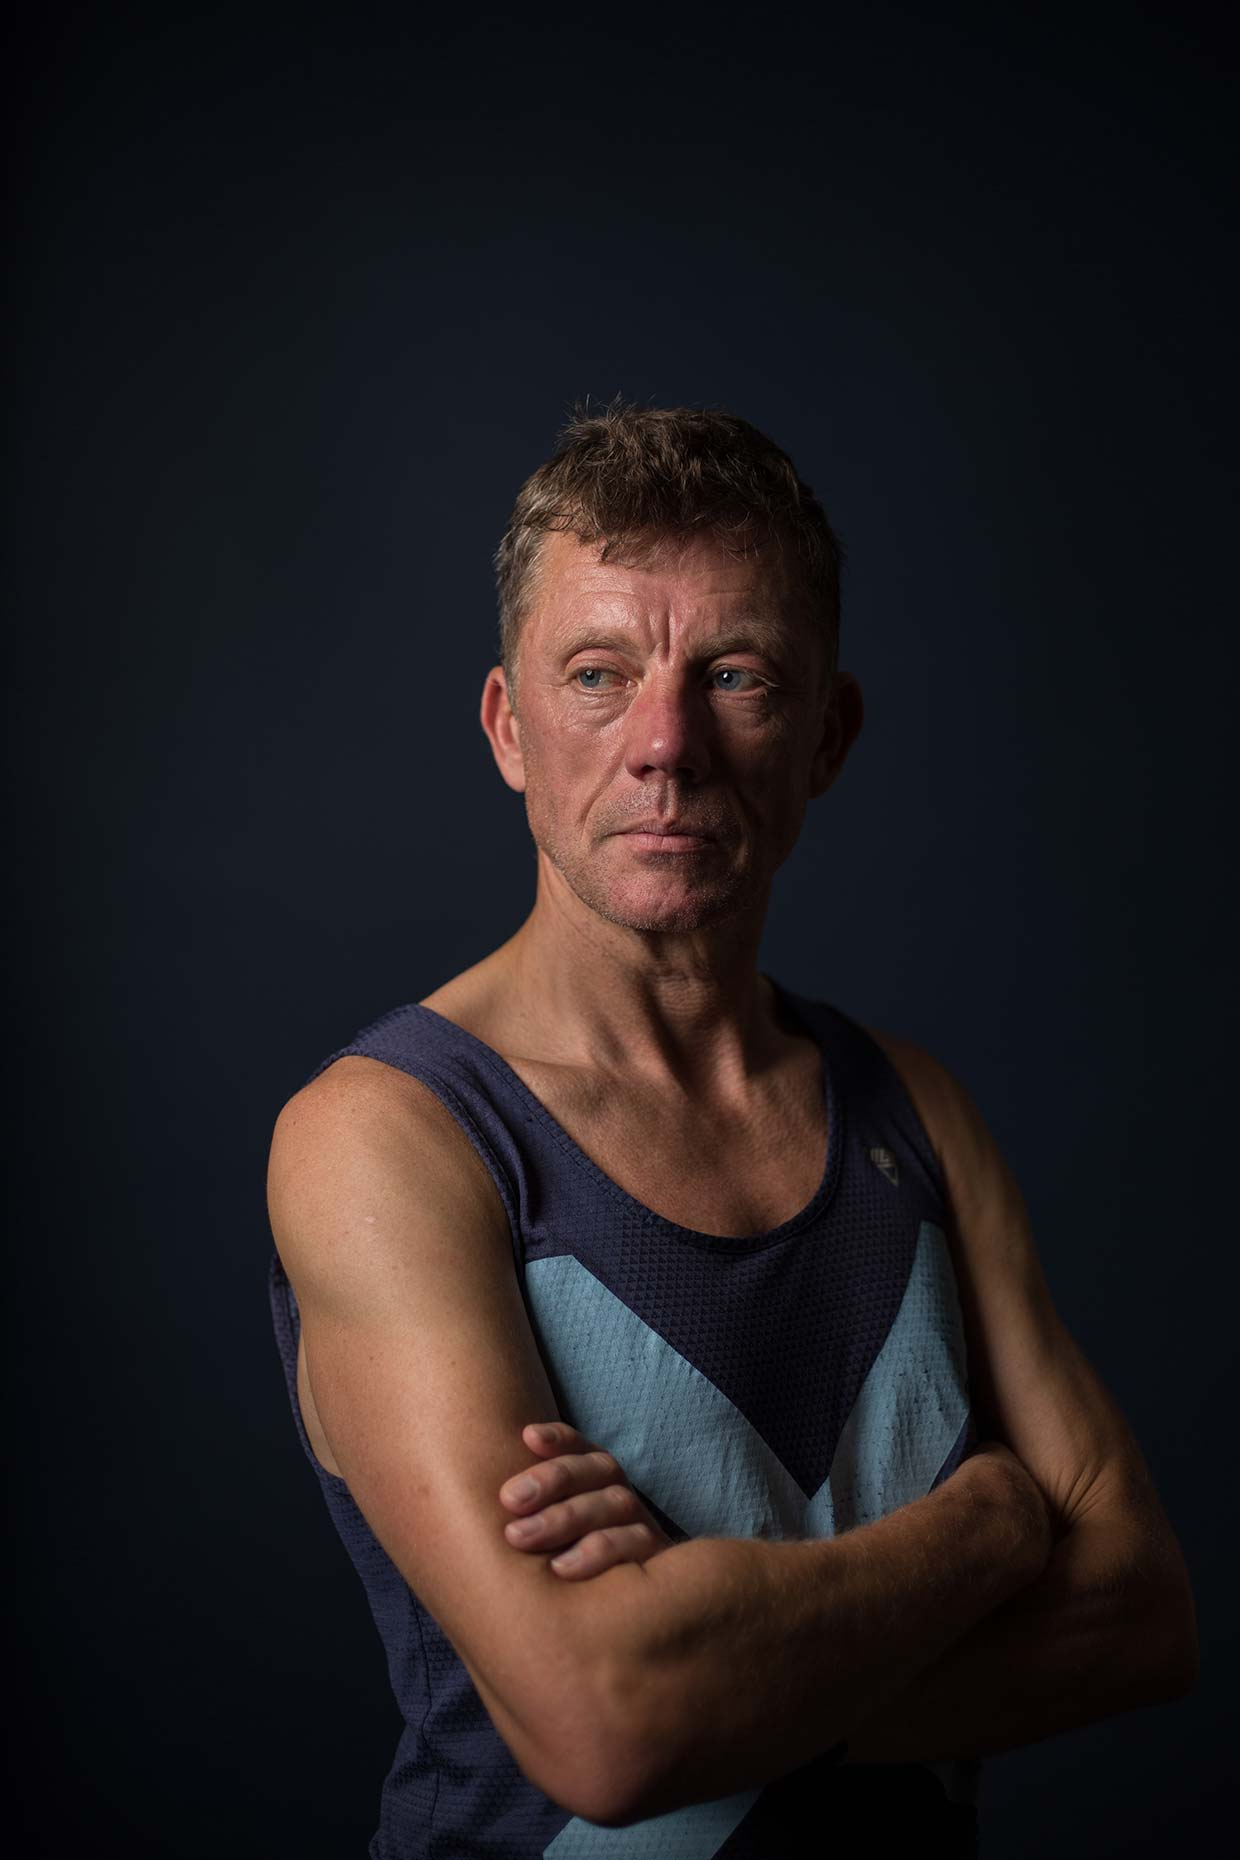 Portrait of runner at Bellahouston Harriers, by Scotland photographer